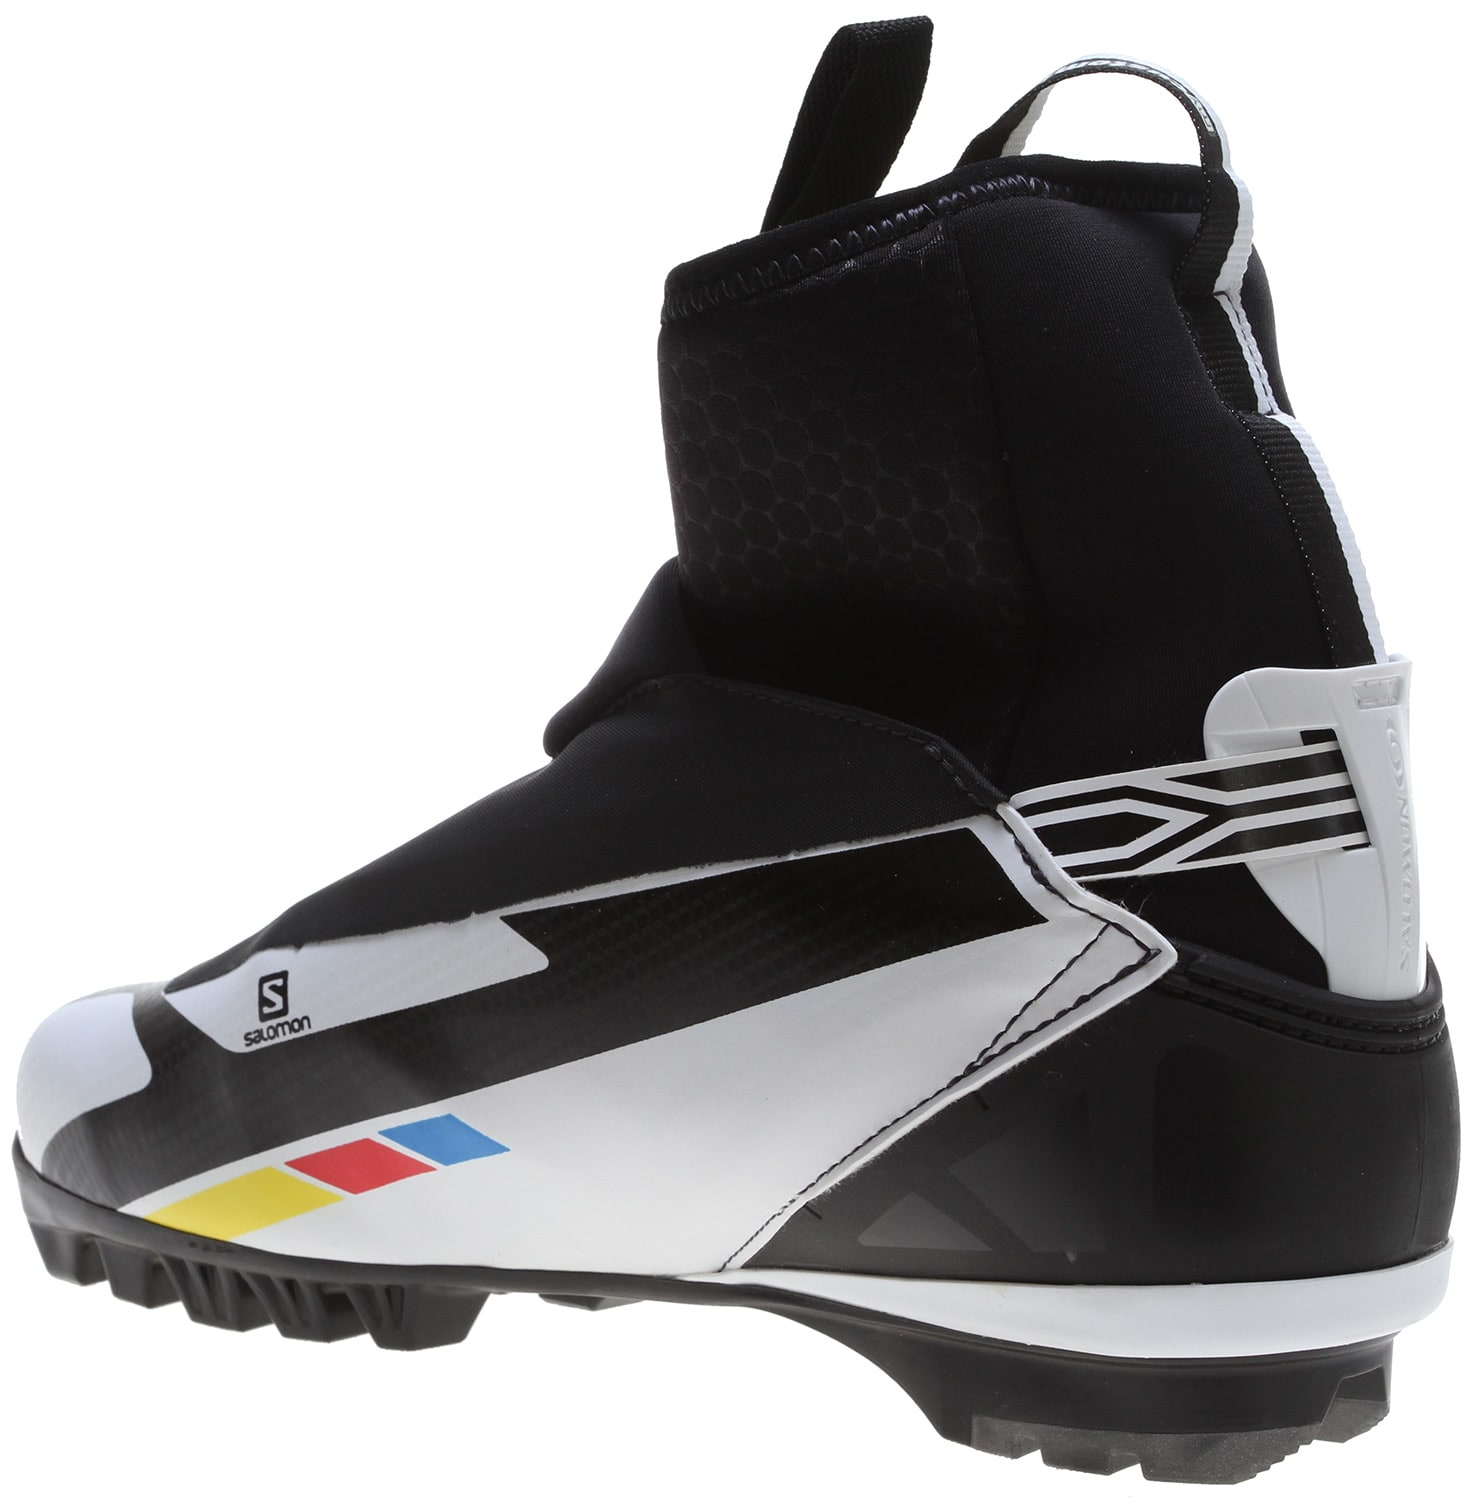 On Sale Salomon Rc Carbon Xc Ski Boots Up To 50 Off